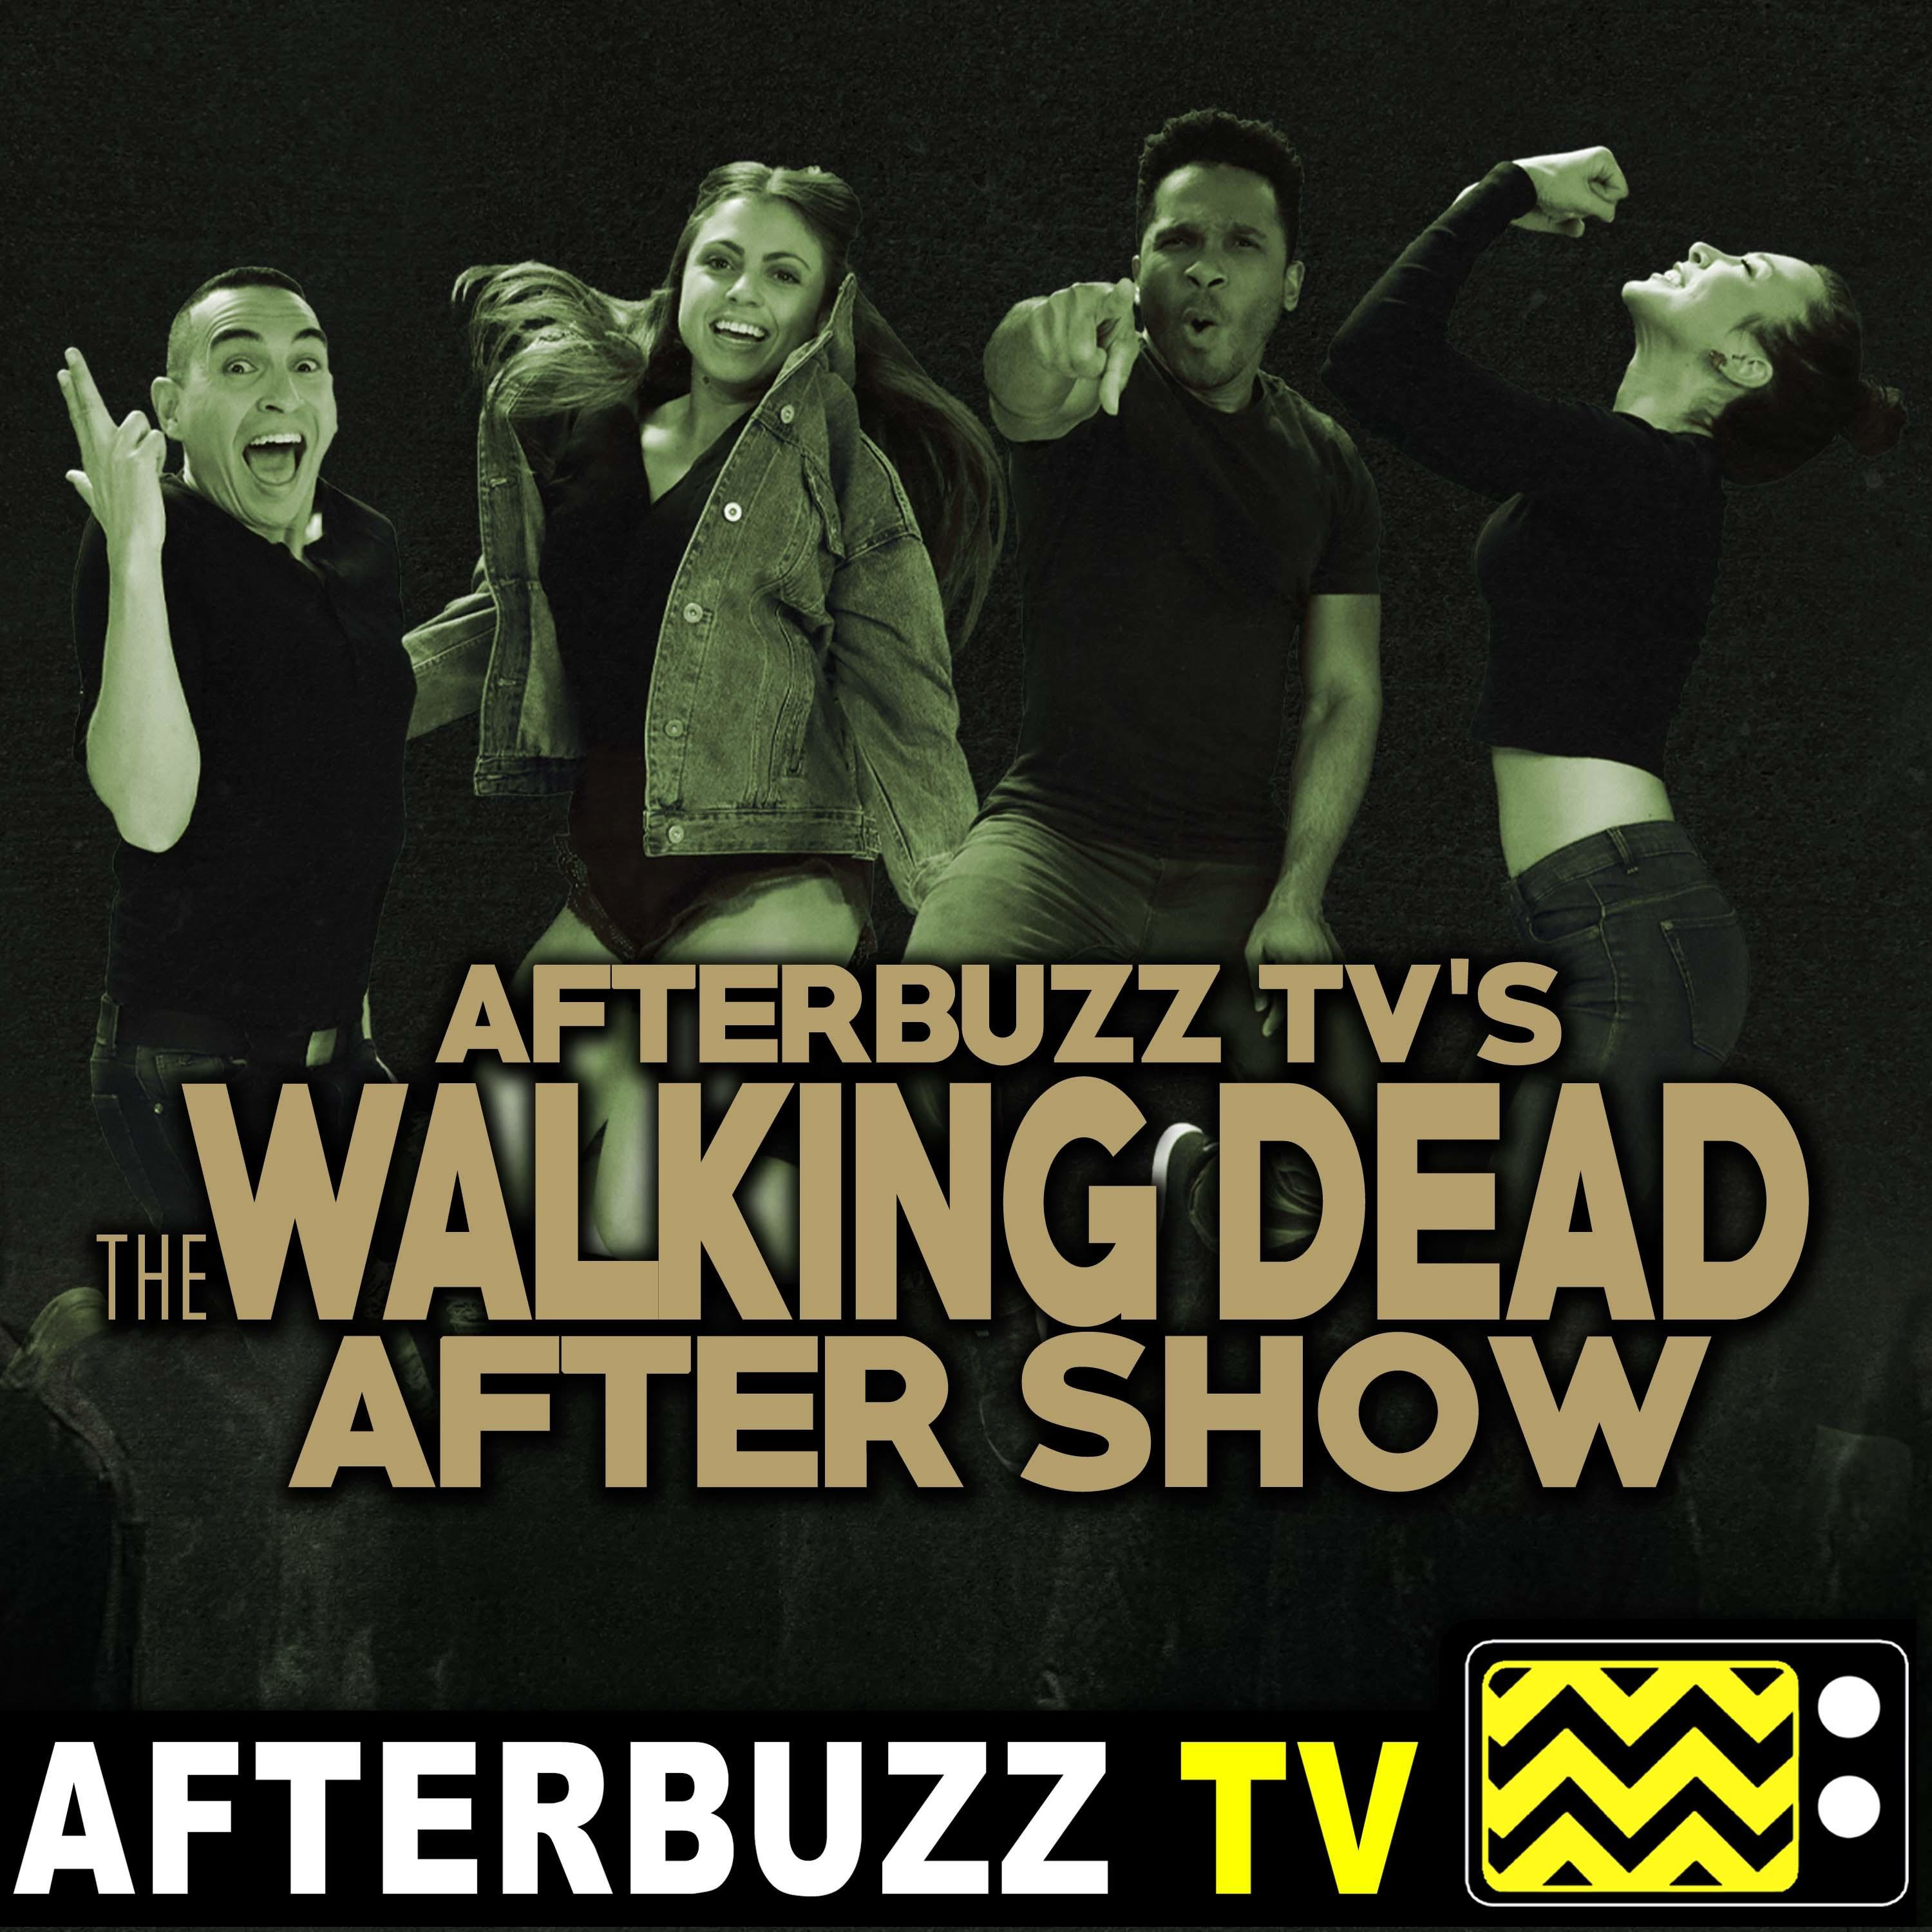 The Walking Dead Reviews & After Show - AfterBuzz TV